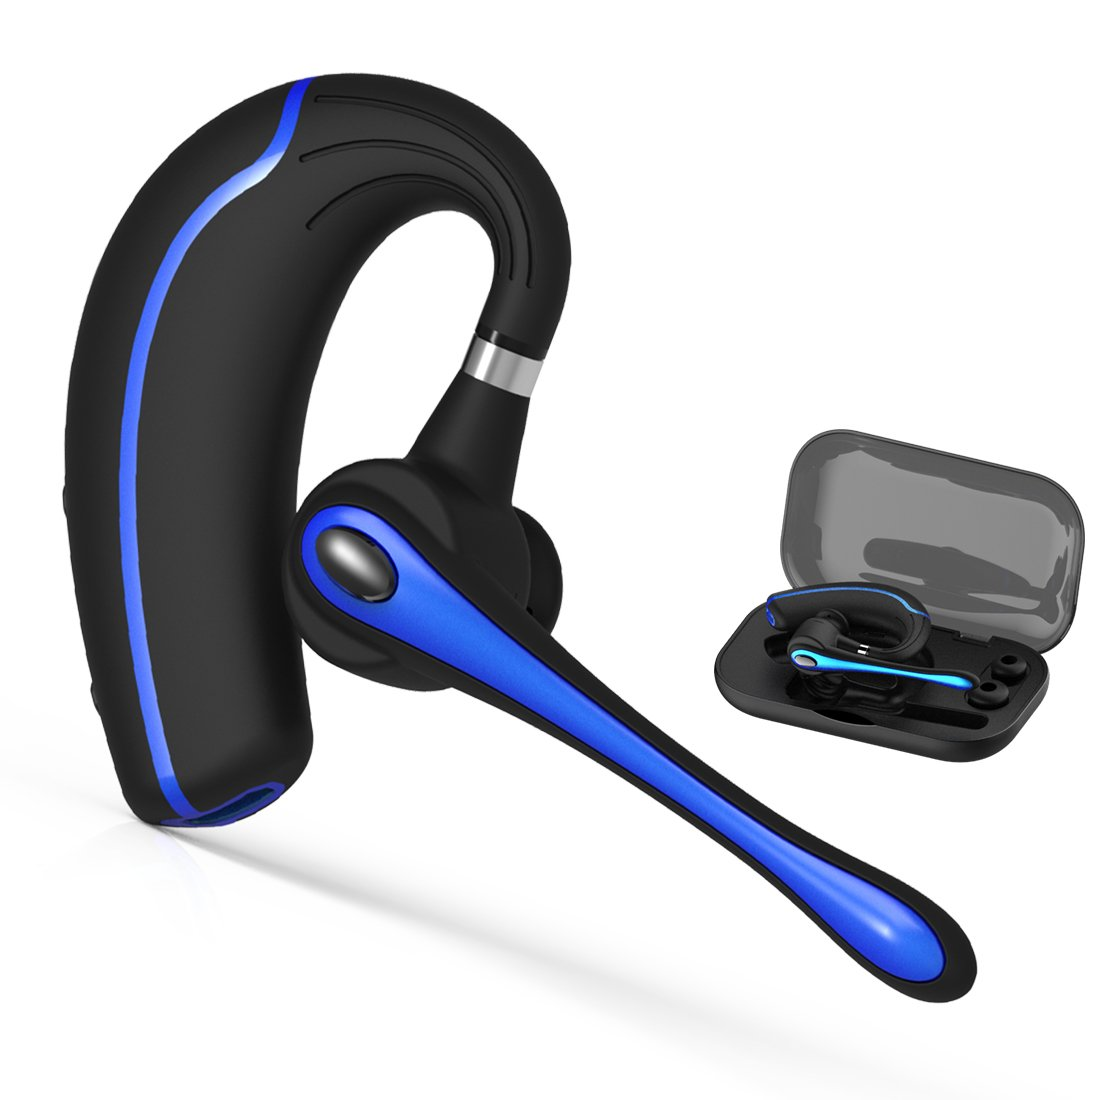 Walless Bluetooth Headset,Wireless Earpiece V4.1Hands Free Microphone for Business, Office,Driving,Work for iPhone/Samsung/Android Cell Phones (Black-B) by walless (Image #1)